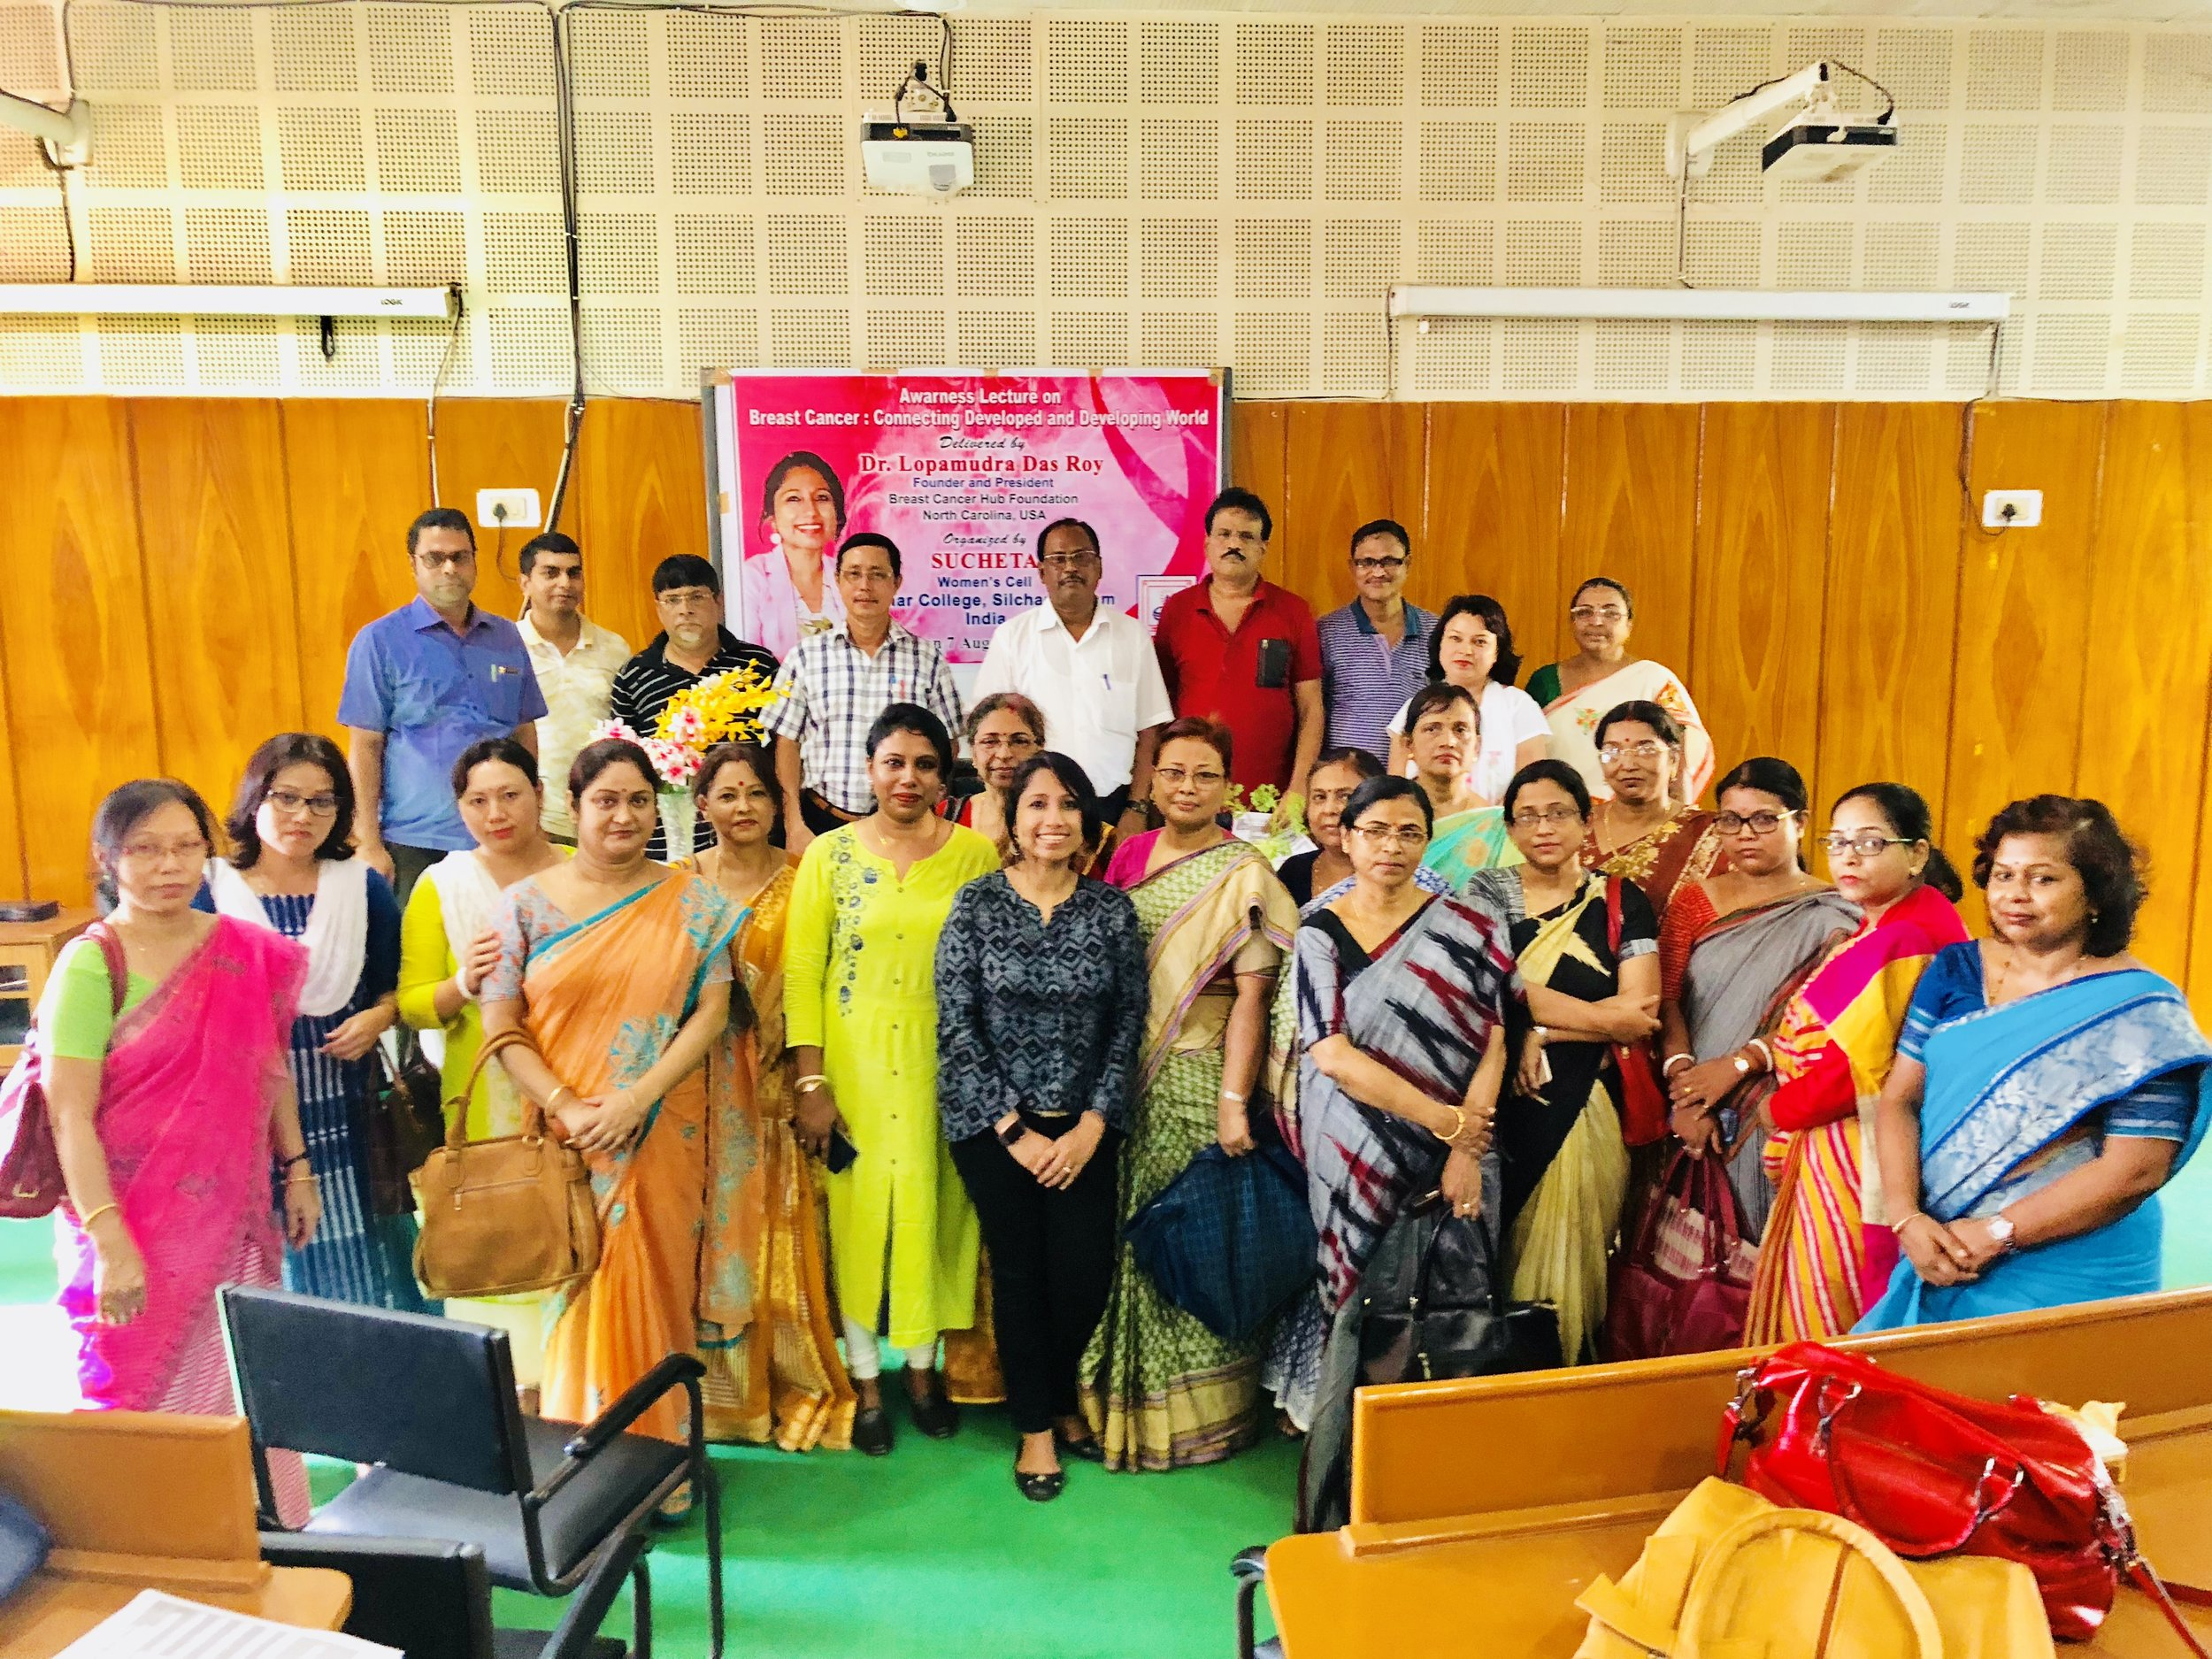 Photo from Session 2: The first session from 11 AM was addressed for the students of Cachar College and the second Event from 1:30 PM onwards for the Faculty & Staffs. My utmost thanks to Mr. Joydeep Biswas, Associate Professor, Department of Economics & Head, Department of Statistics, Cachar College, an inspiration for everyone, for your huge support & generous introduction. Finally, immensely thankful to Sucheta Women's Cell Cachar College, Silchar, Assam for organizing both the events immaculately. Extremely thankful to Dr. Padmasree Chakrabarty, Associate Professor, Department of English and Secretary, on behalf of Sucheta Women's Cell and Dr. Alshahiba Shamsuddin, Associate Professor & Head, Department of economics for coming forward to collaborate.